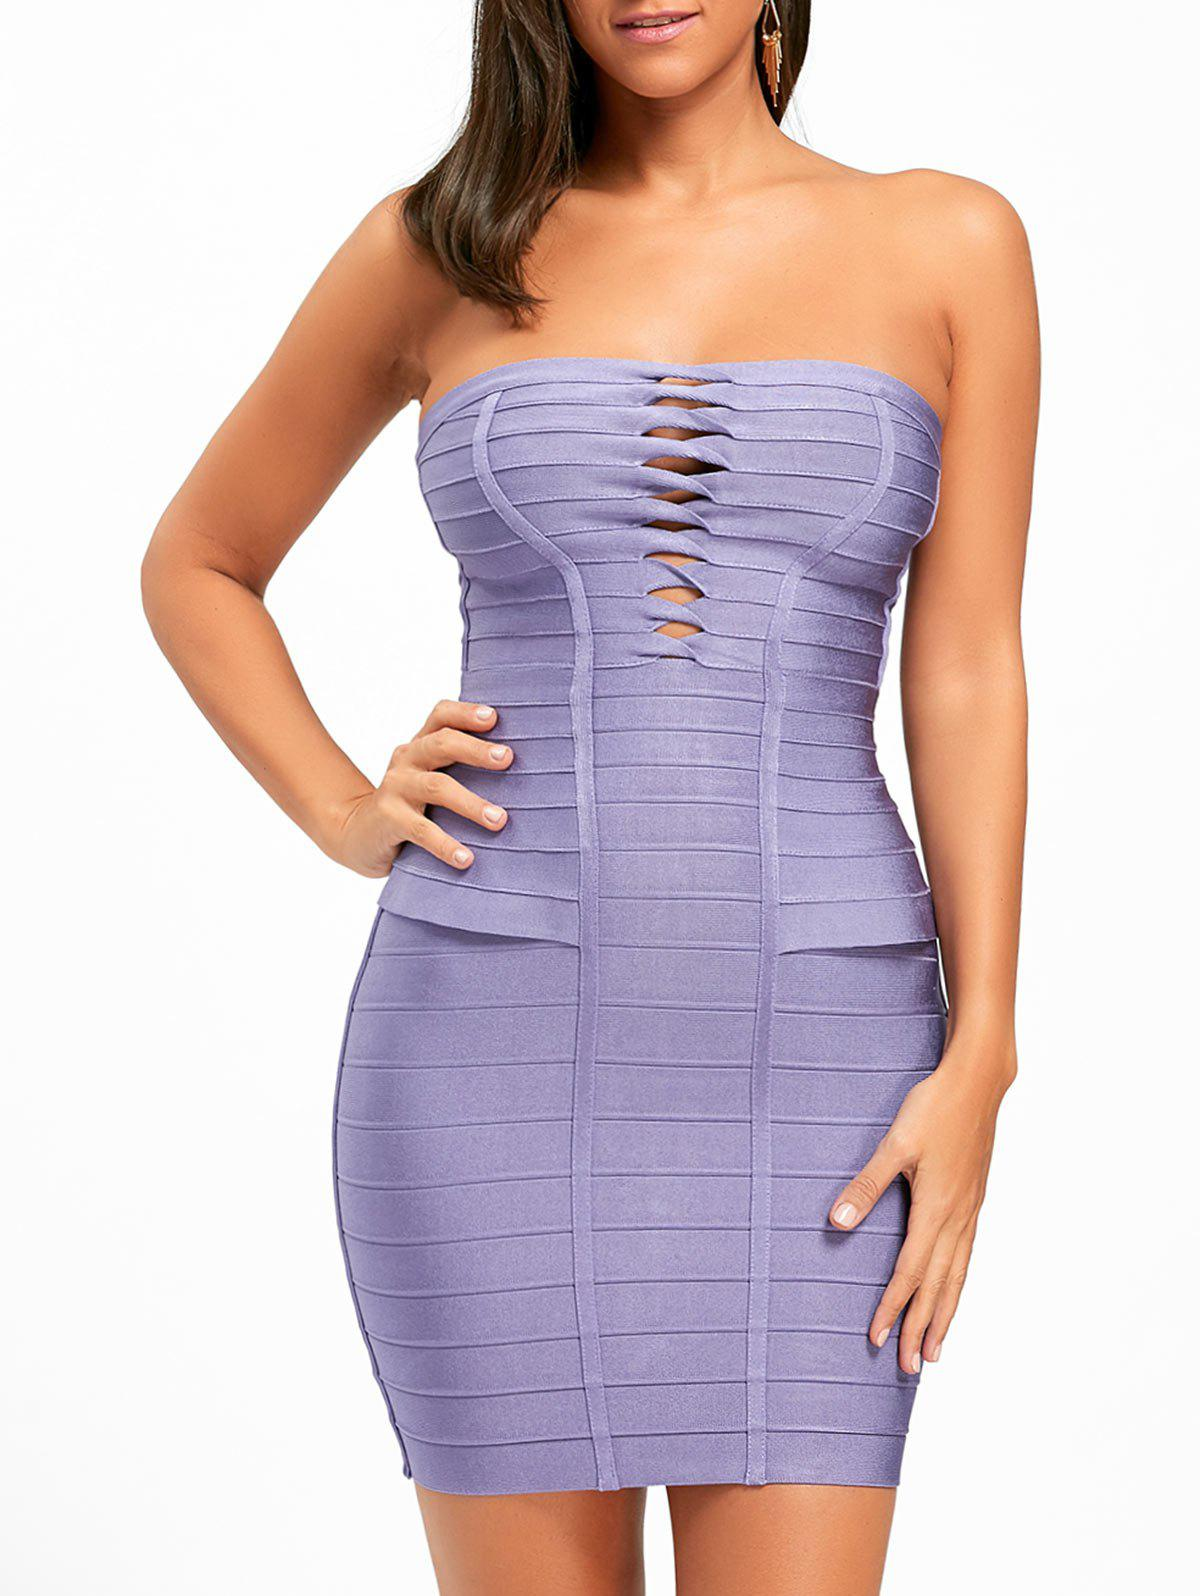 Hollow Out Bandeau Bandage Dress - PURPLE M